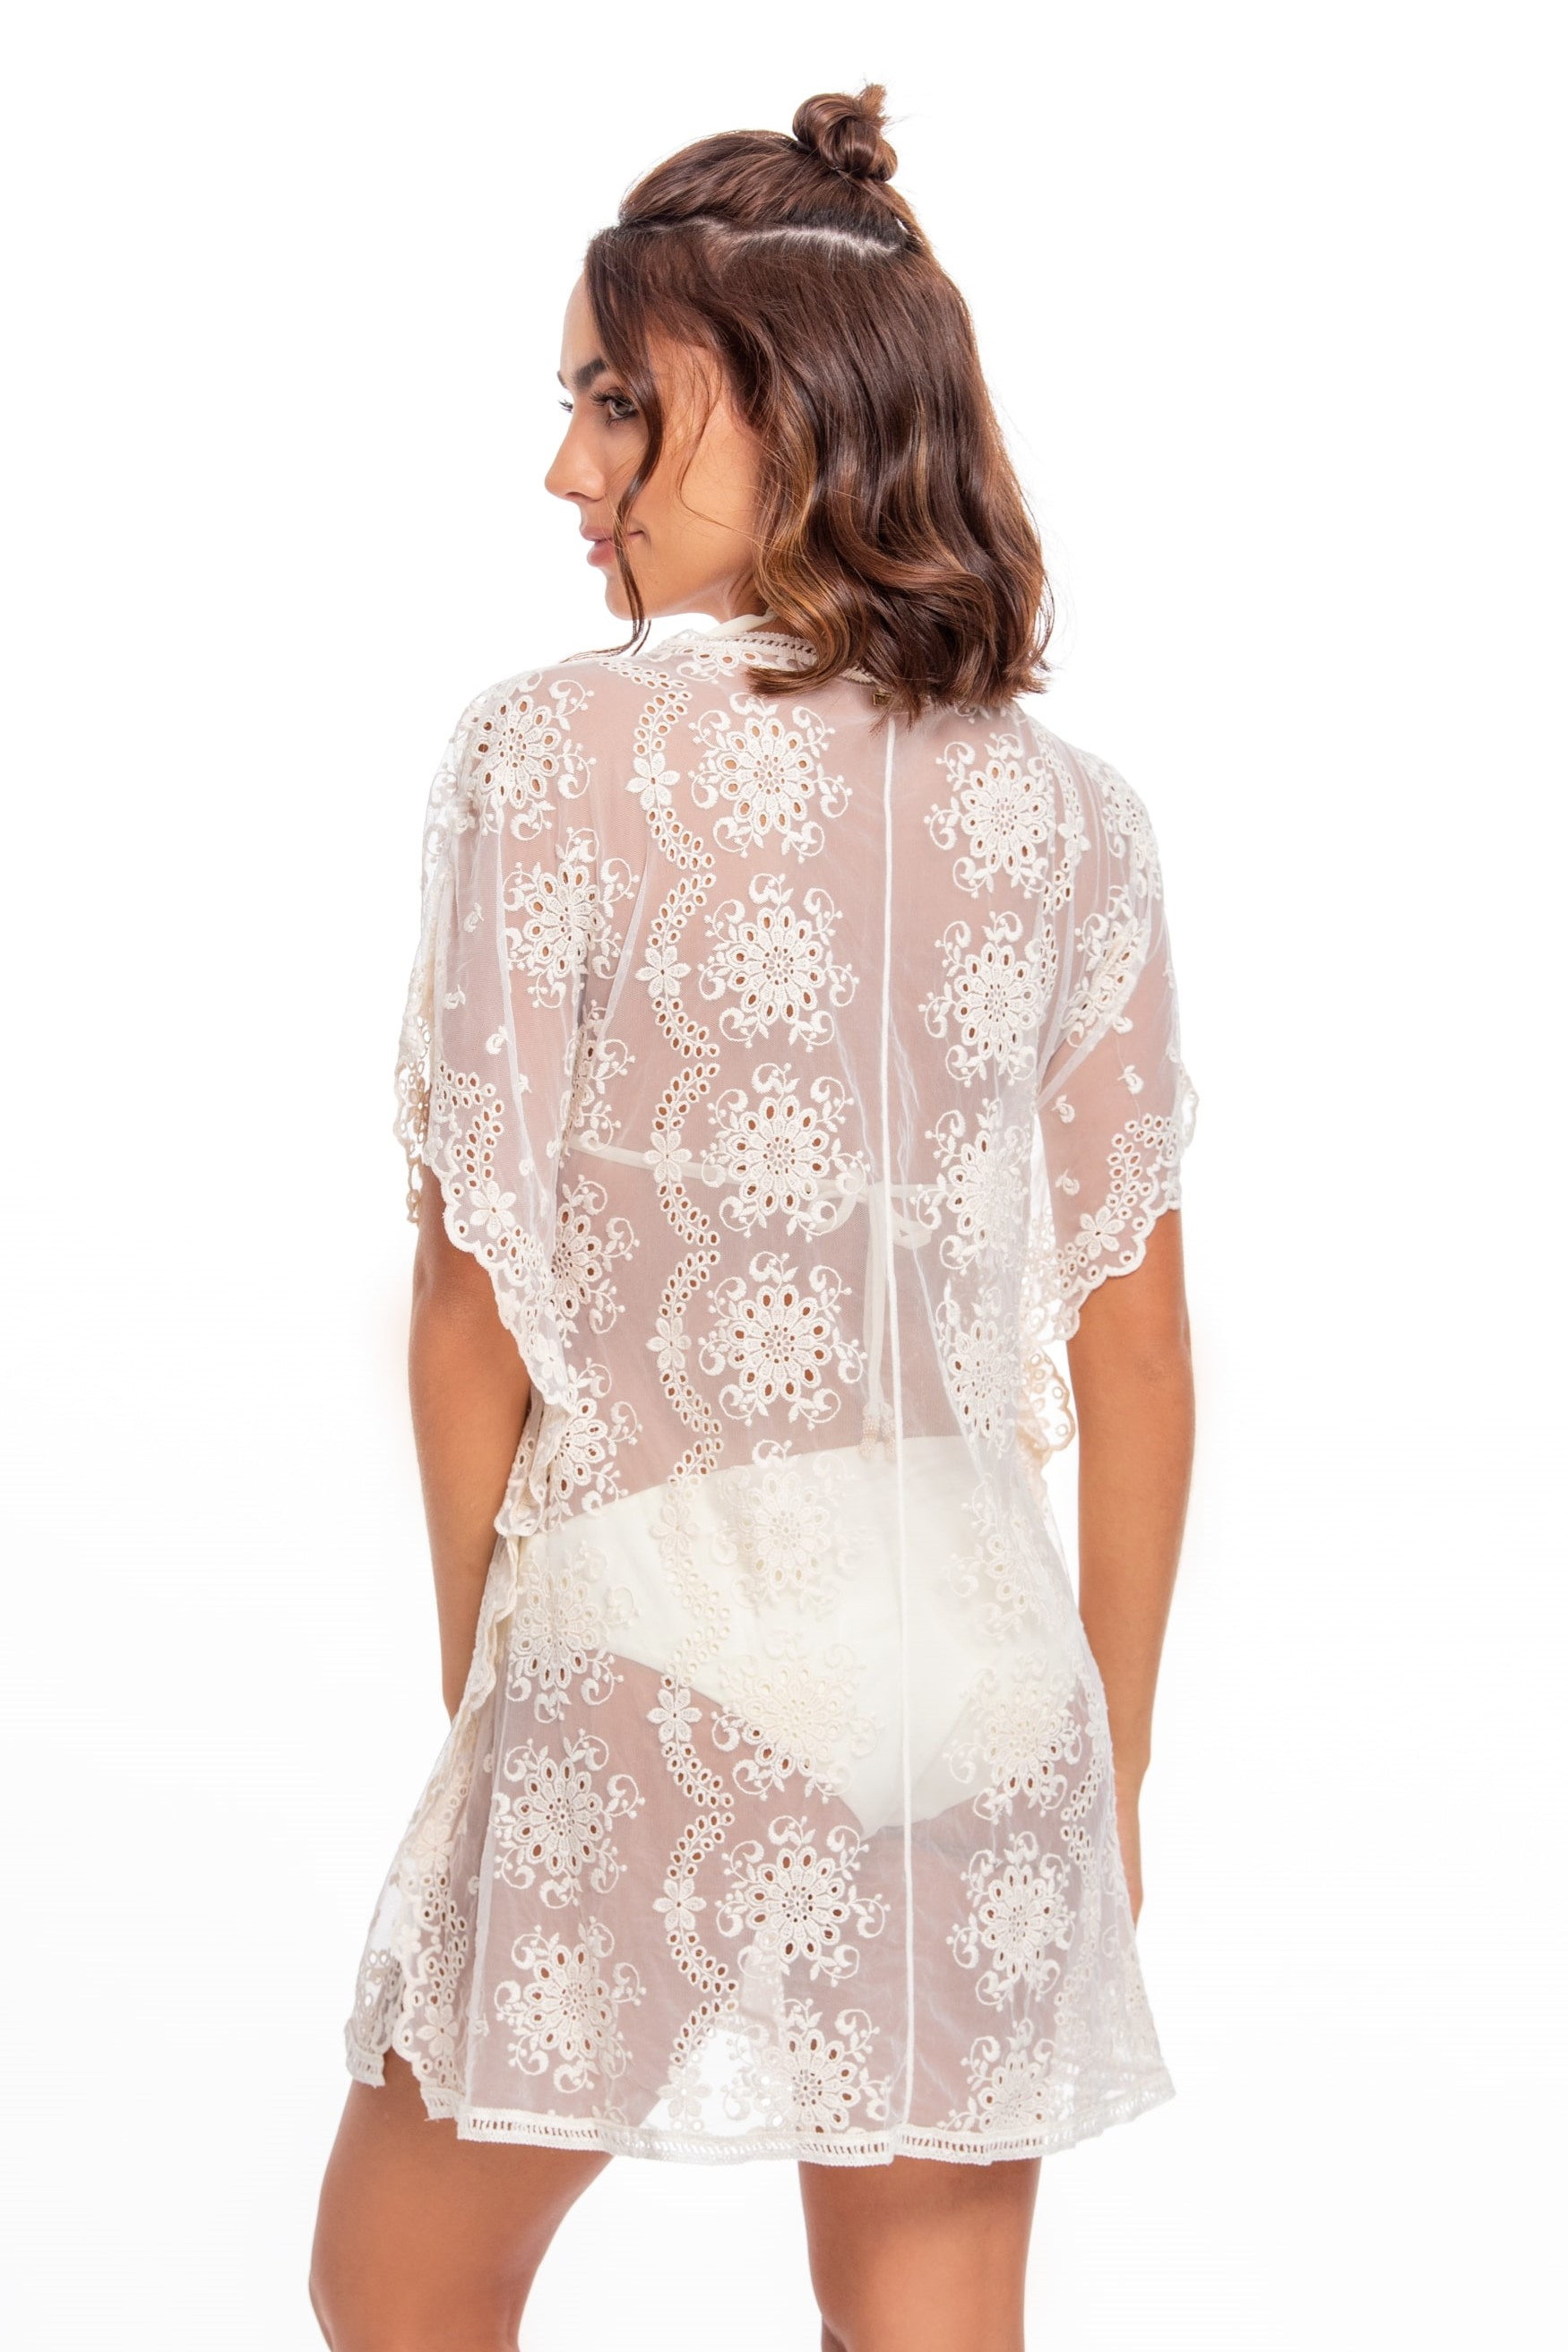 Milonga Palette Lace Beach Cover Up